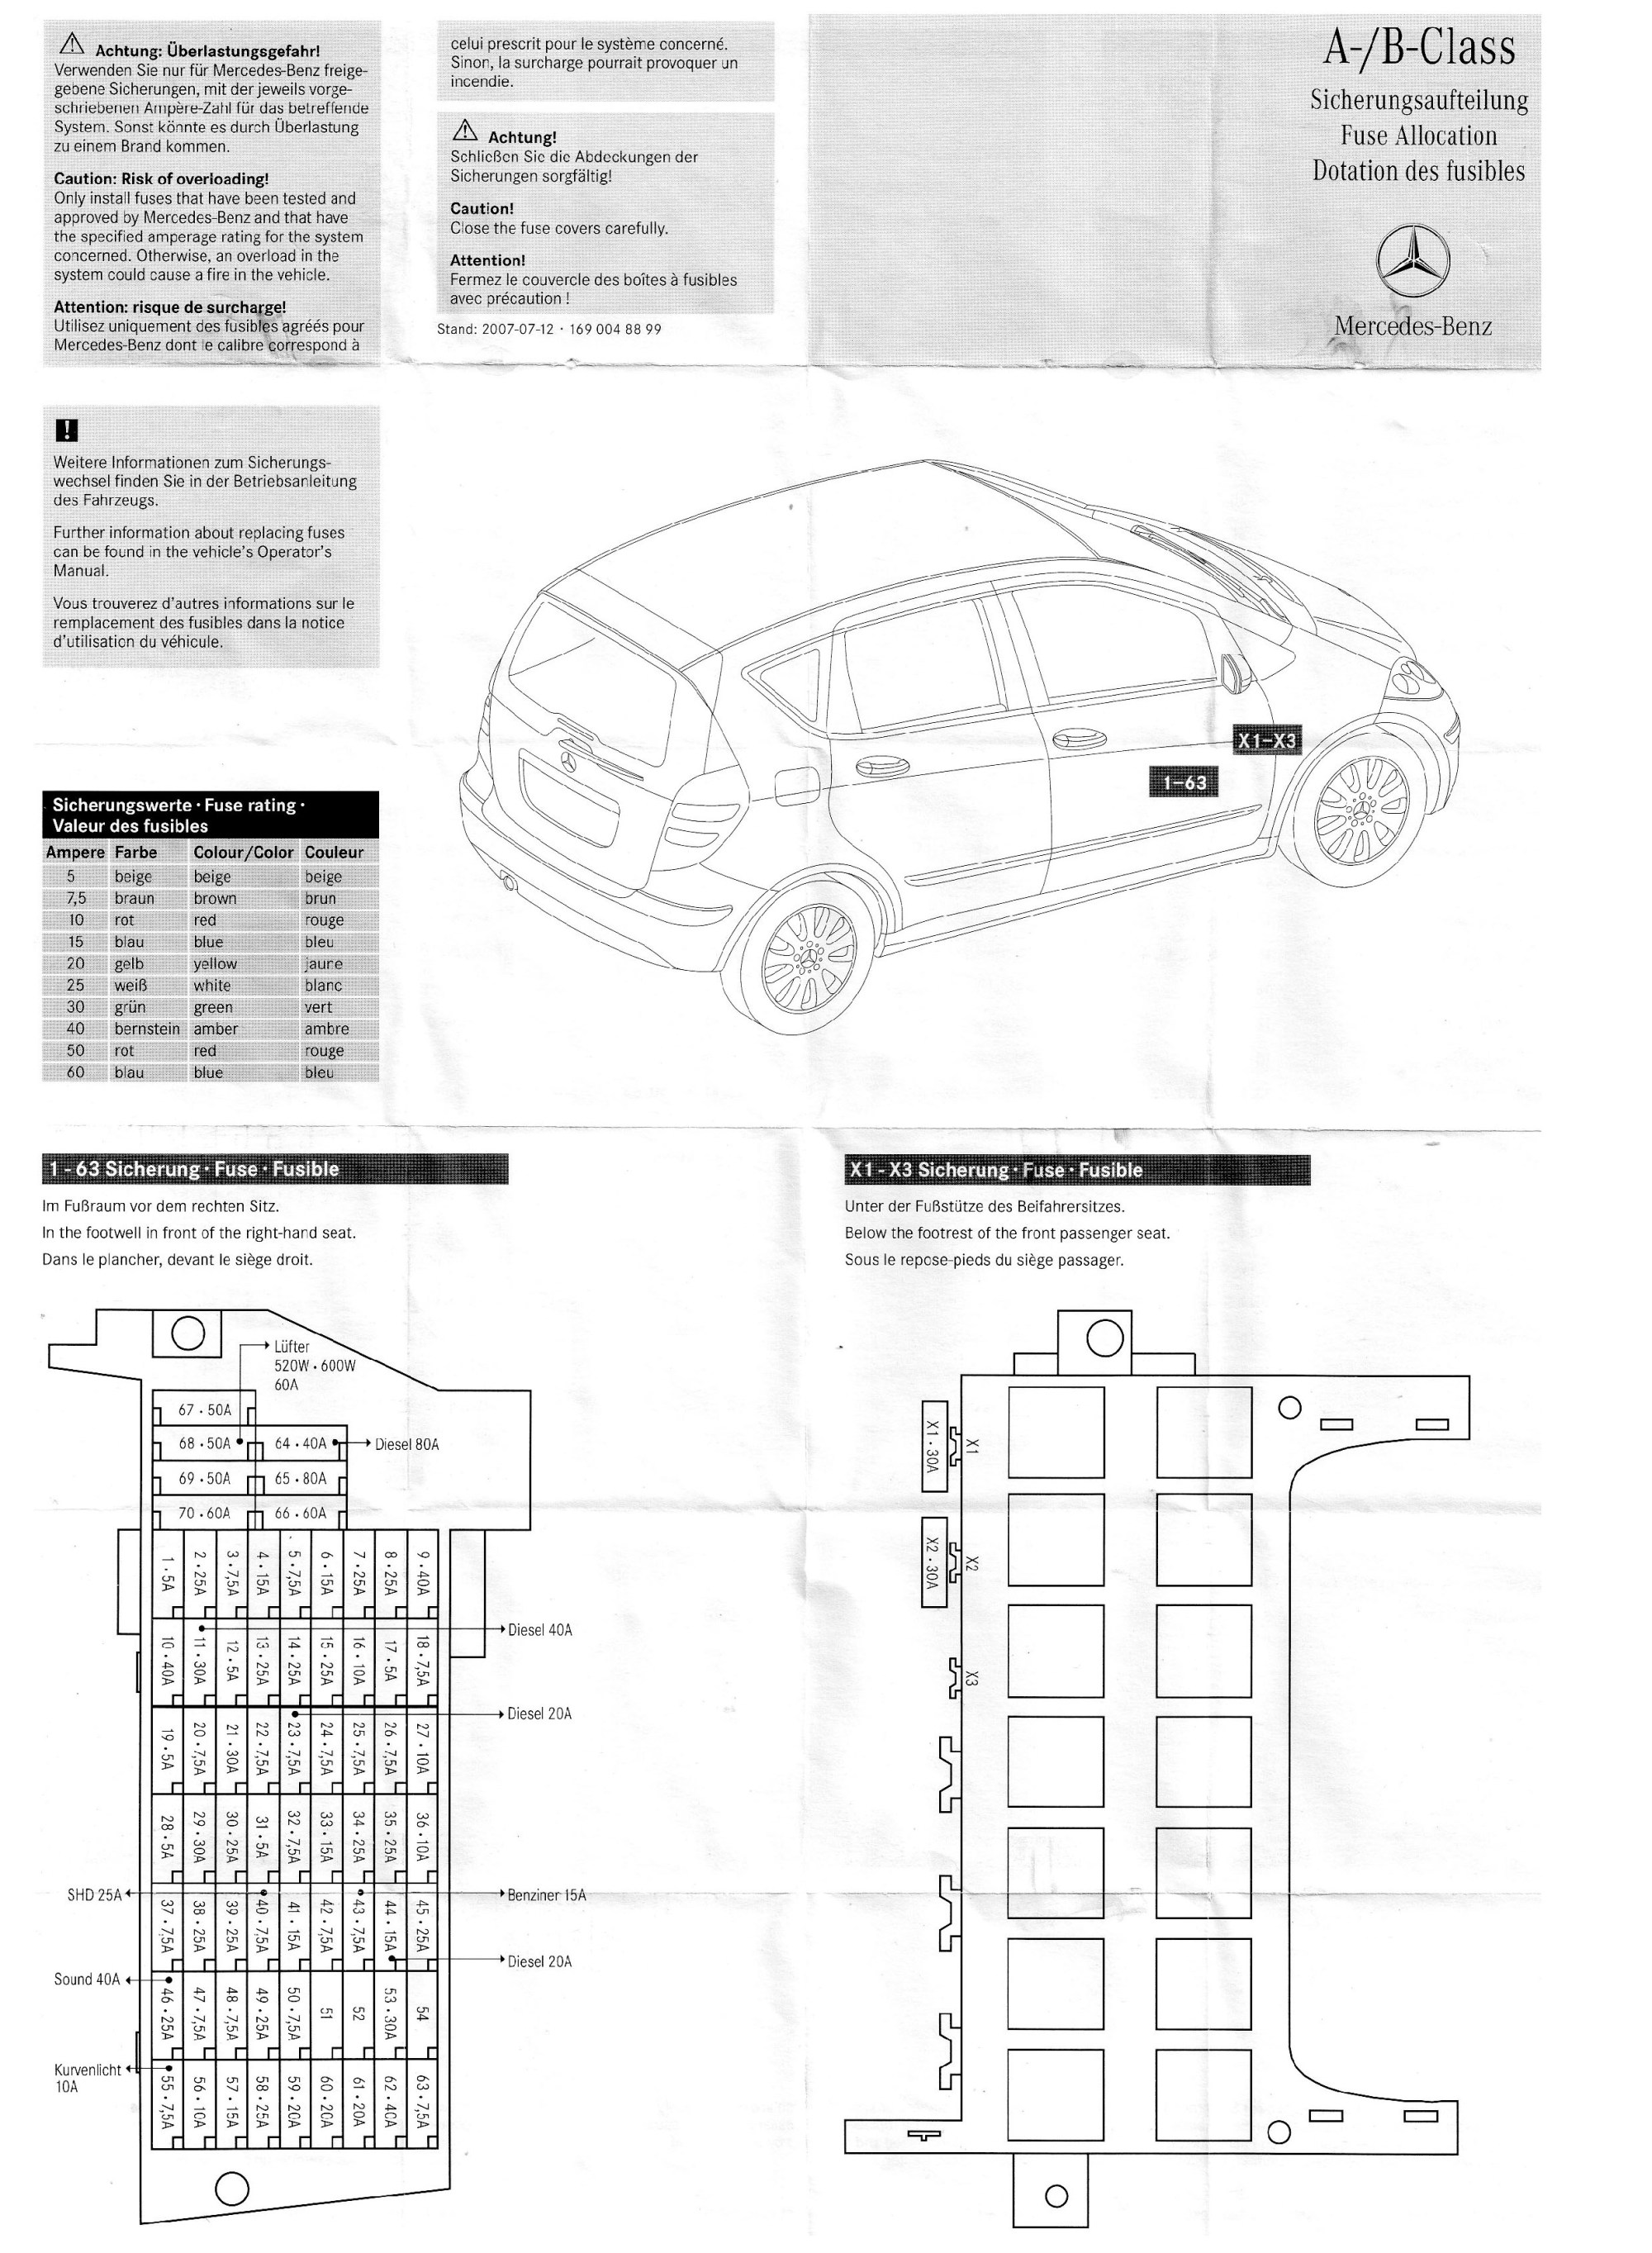 hight resolution of mercedes benz a160 fuse box wiring diagram 2000 mercedes s430 fuse chart mercedes benz c class w204 fuse box diagram